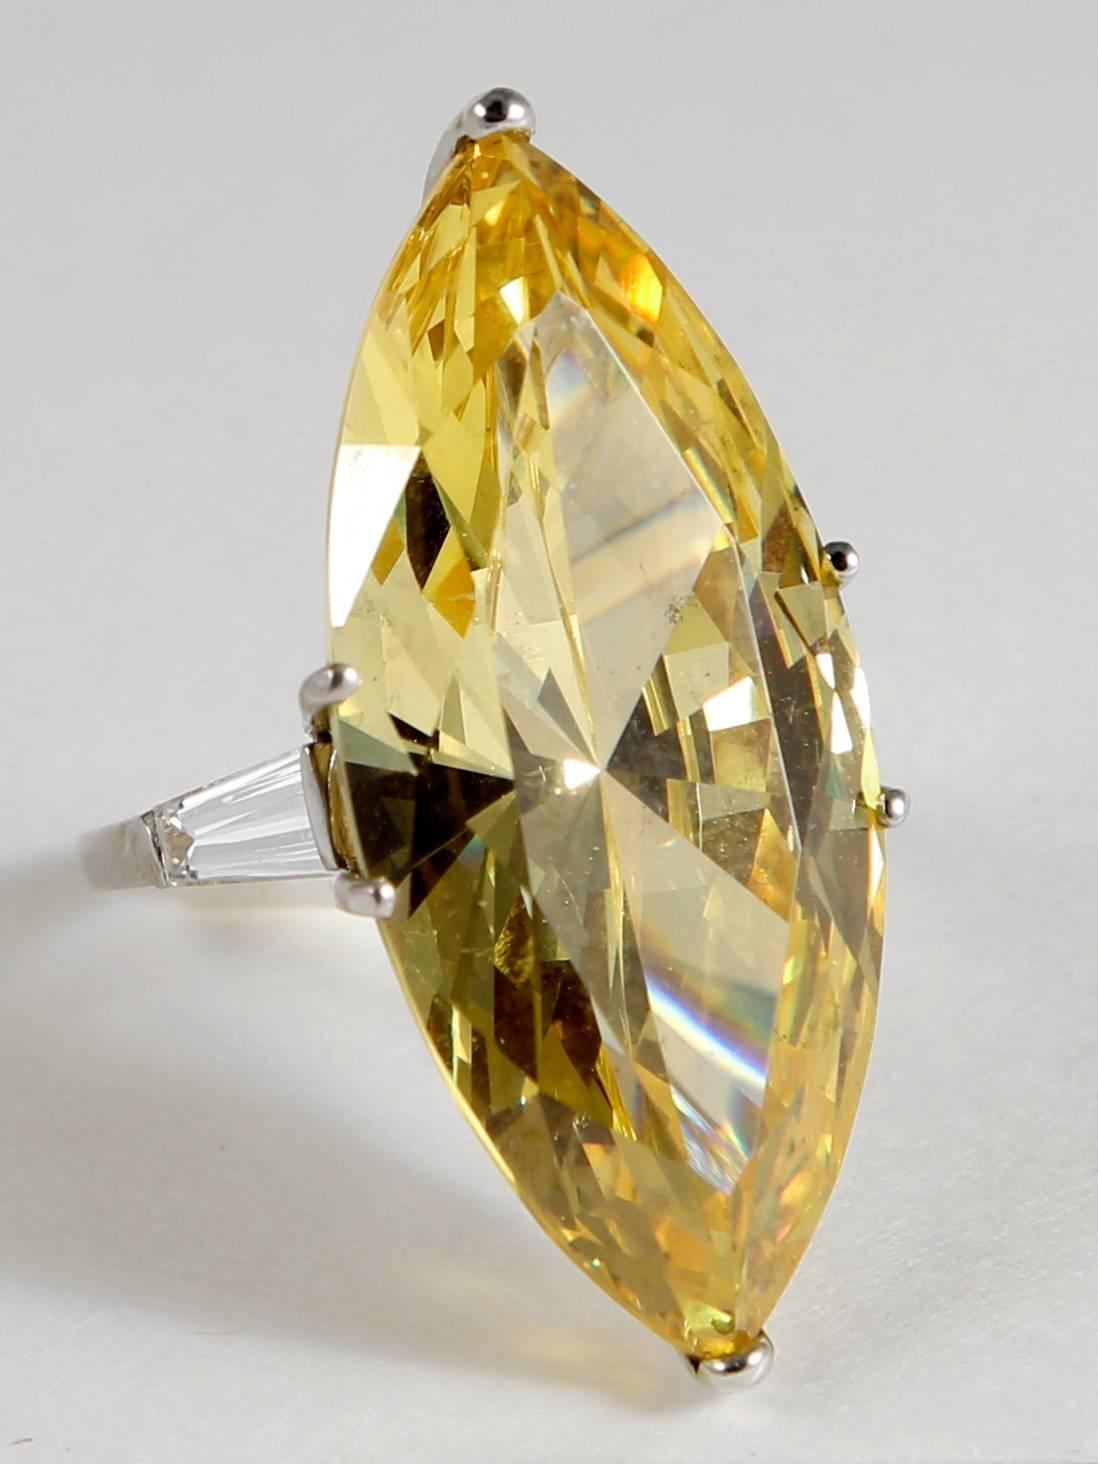 The Jackie O Faux Canary Yellow Marquise Diamond Ring Copy For Sale at 1stdibs